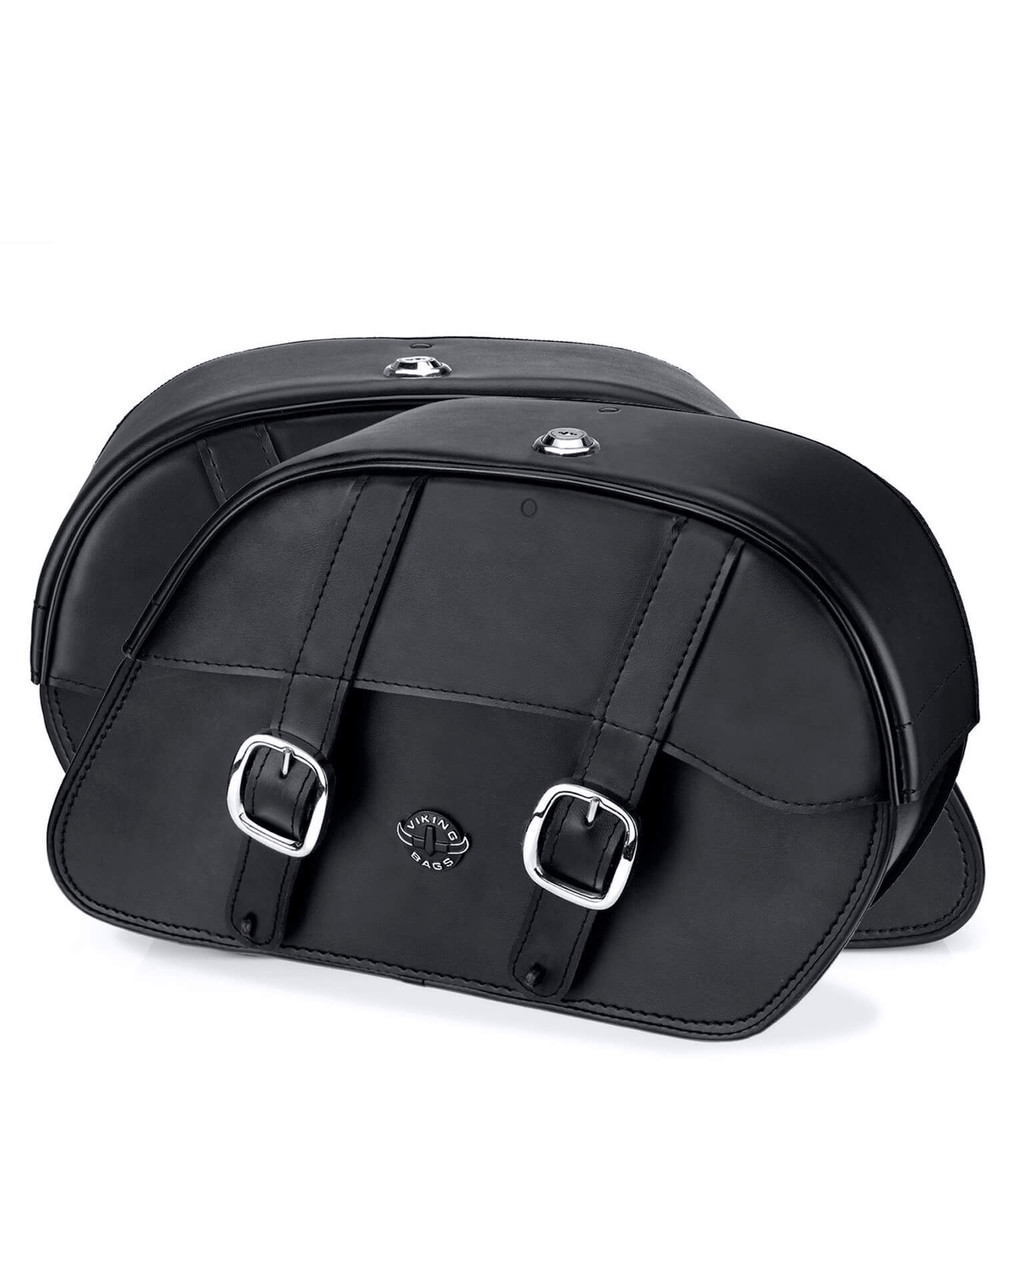 Viking shock Cutout Slanted Large Motorcycle Saddlebags For Harley Dyna Switchback Both bags View